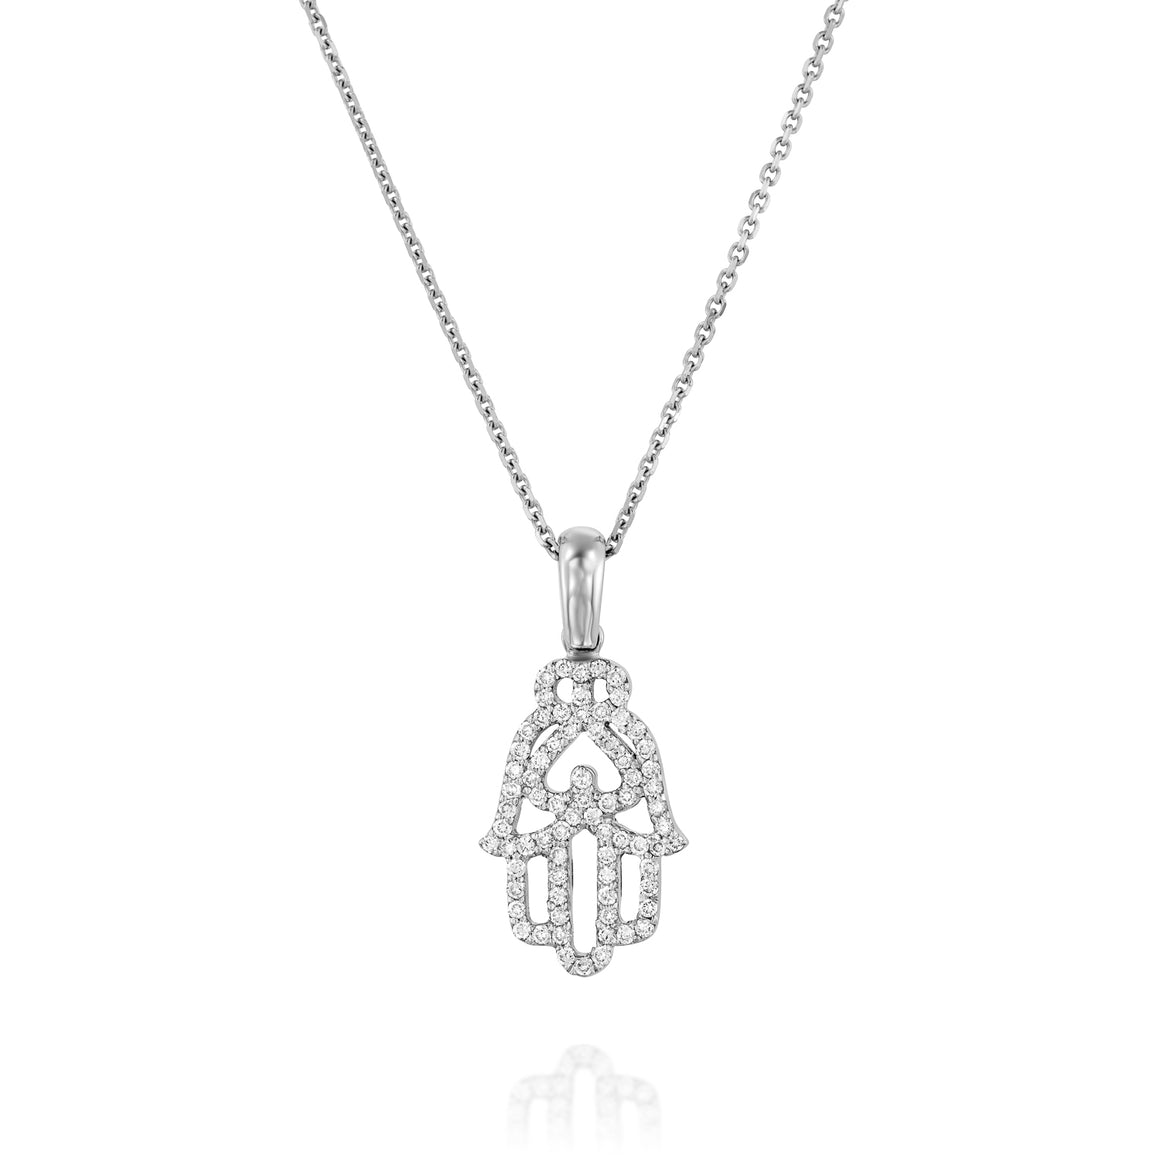 0.31 Carat Diamond Hamsa Pendant Necklace